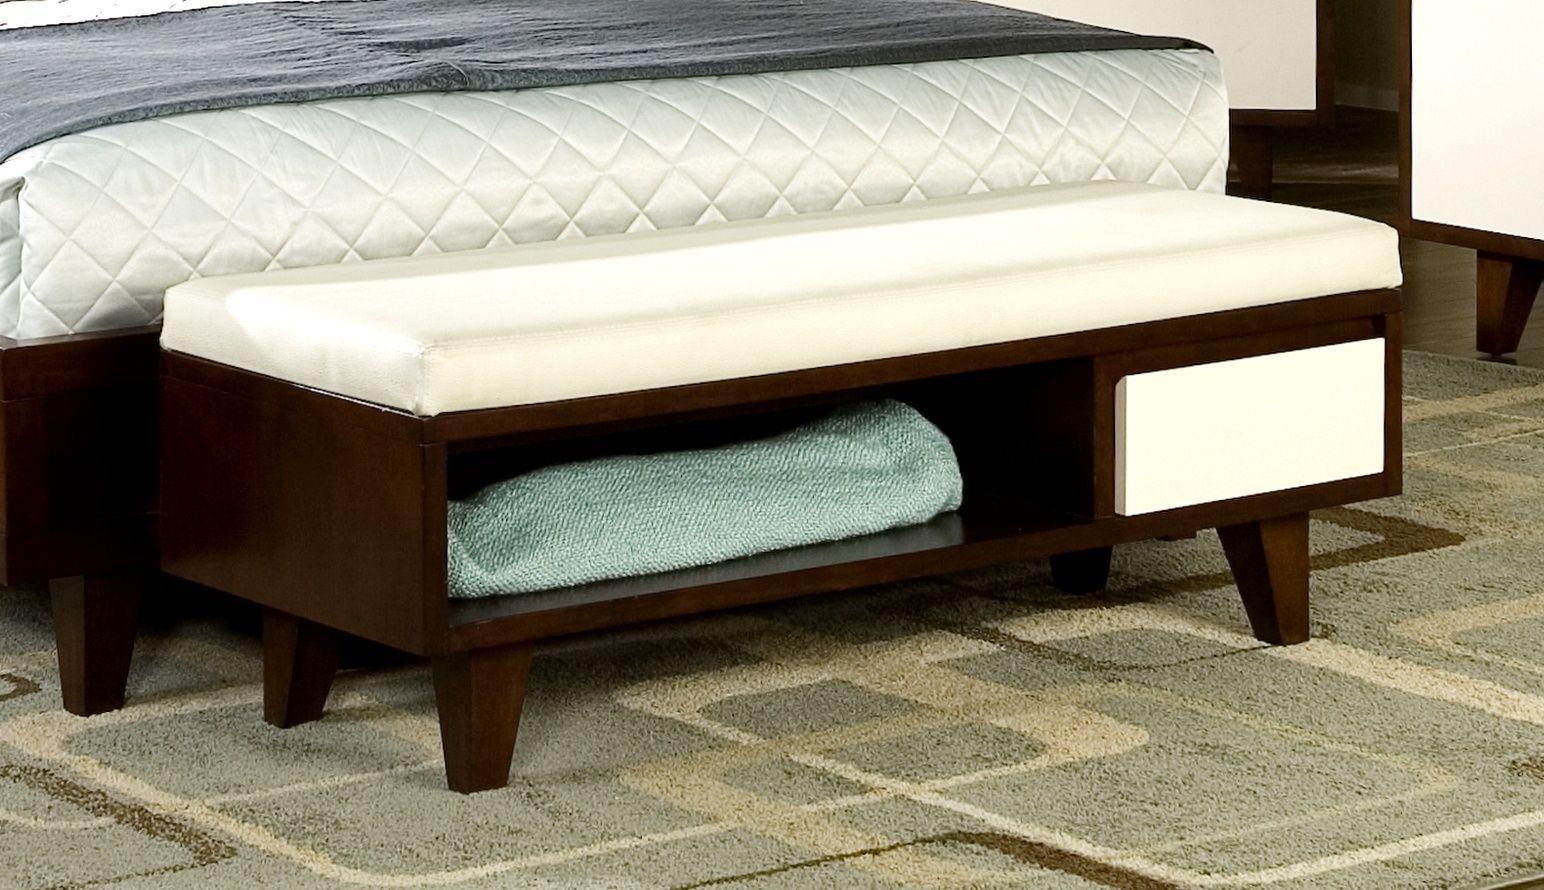 Small Bedroom Bench Seat | Small Bedroom | Pinterest | Bench seat ...